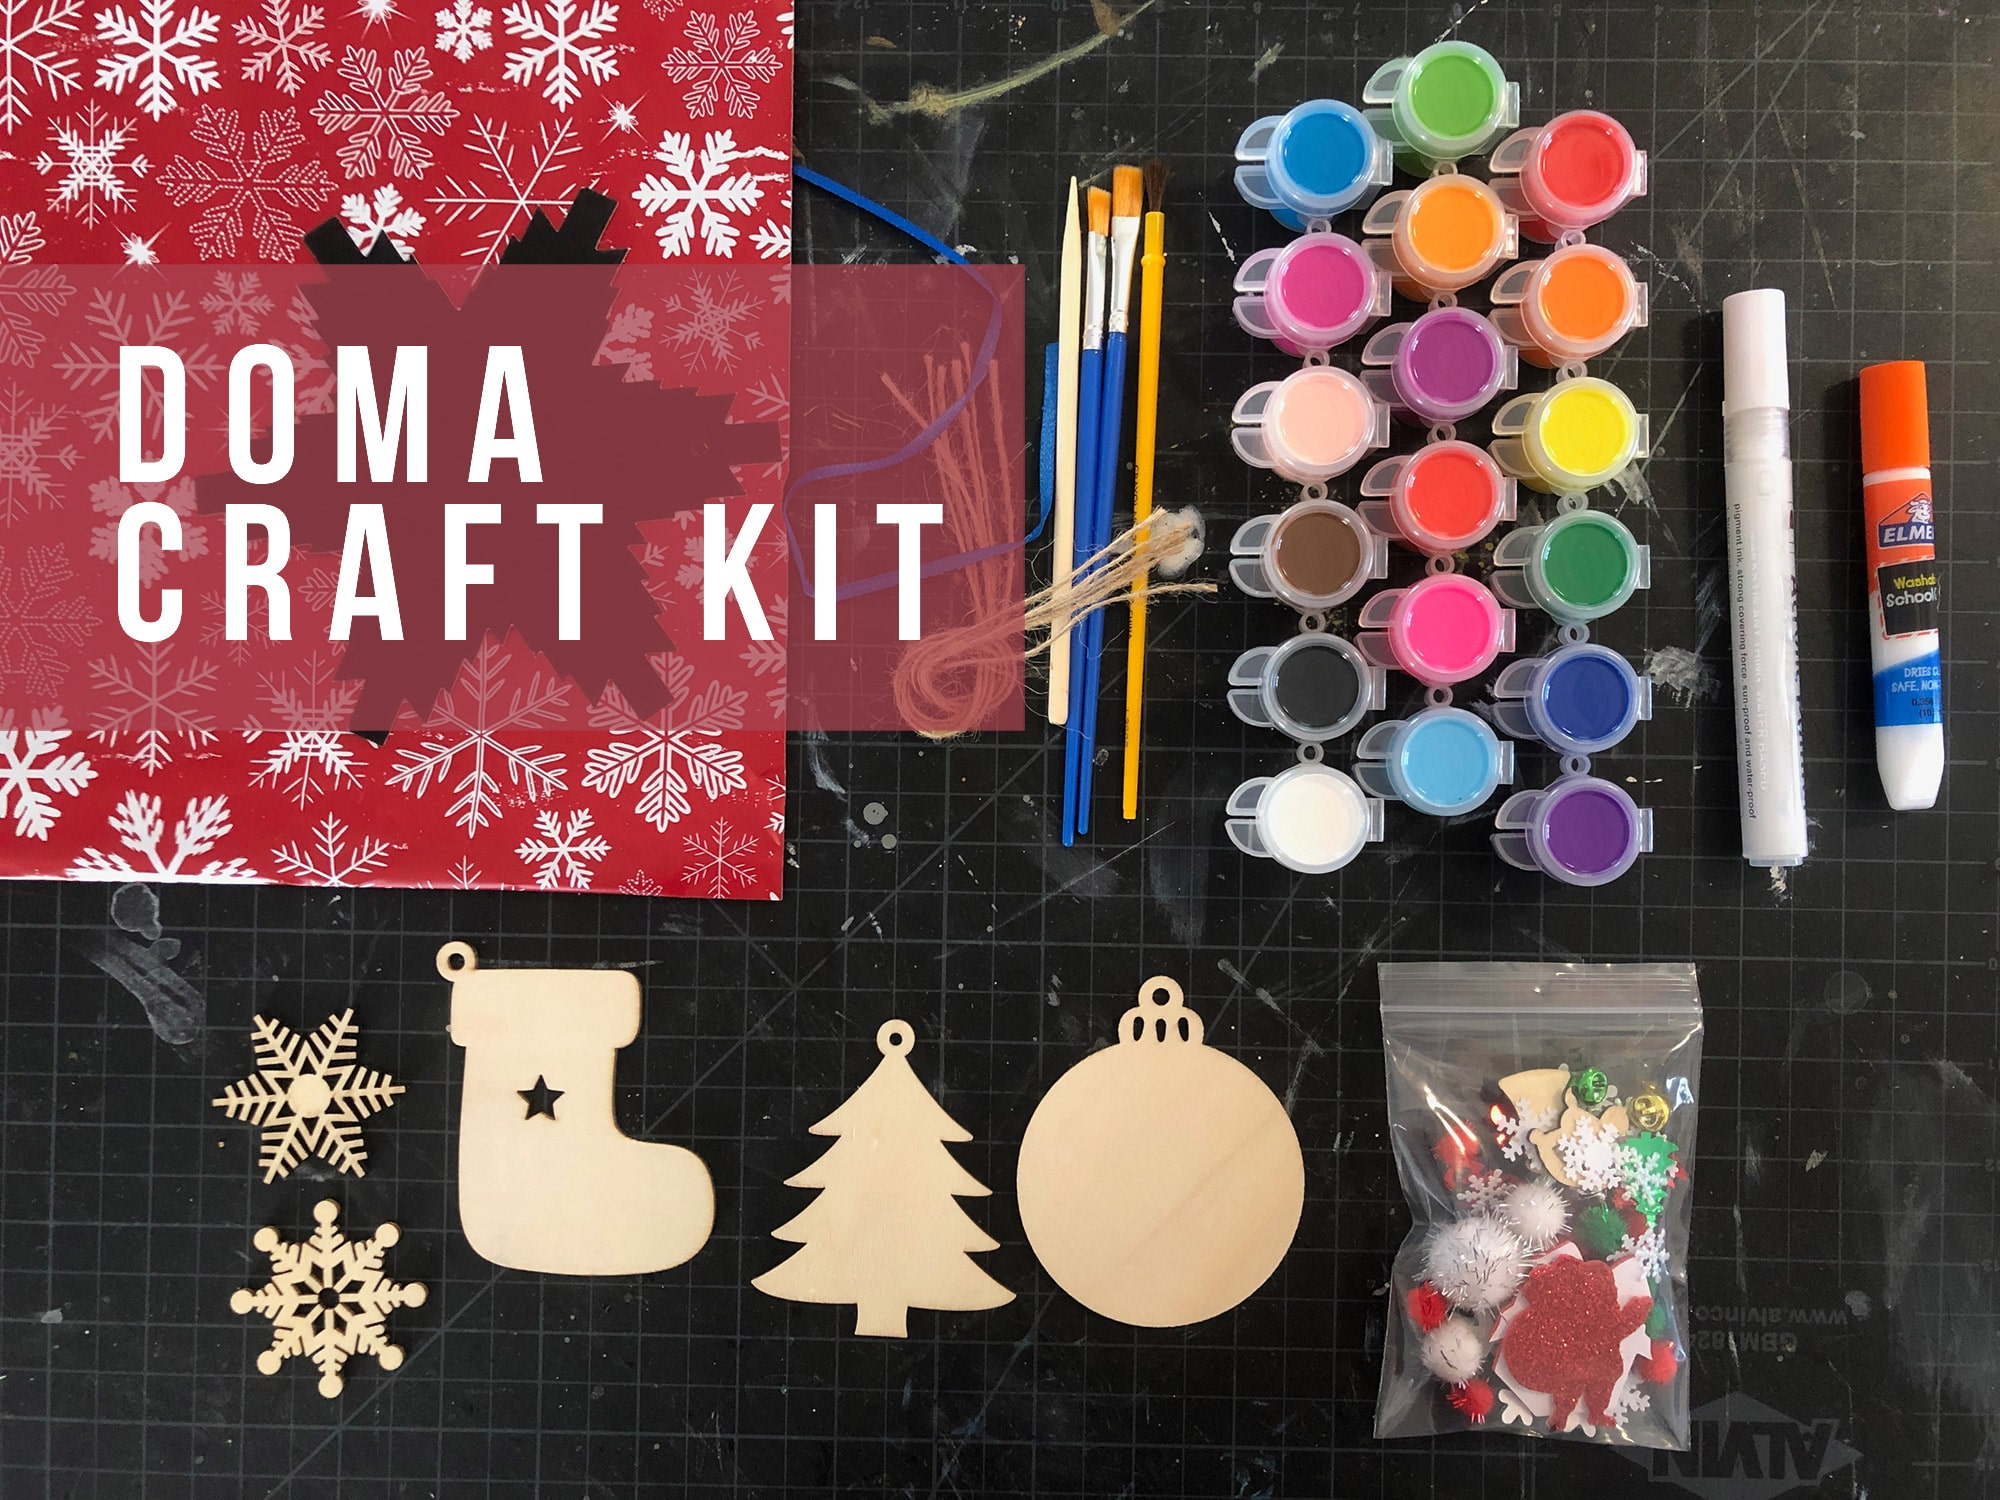 DOMA Craft Kit